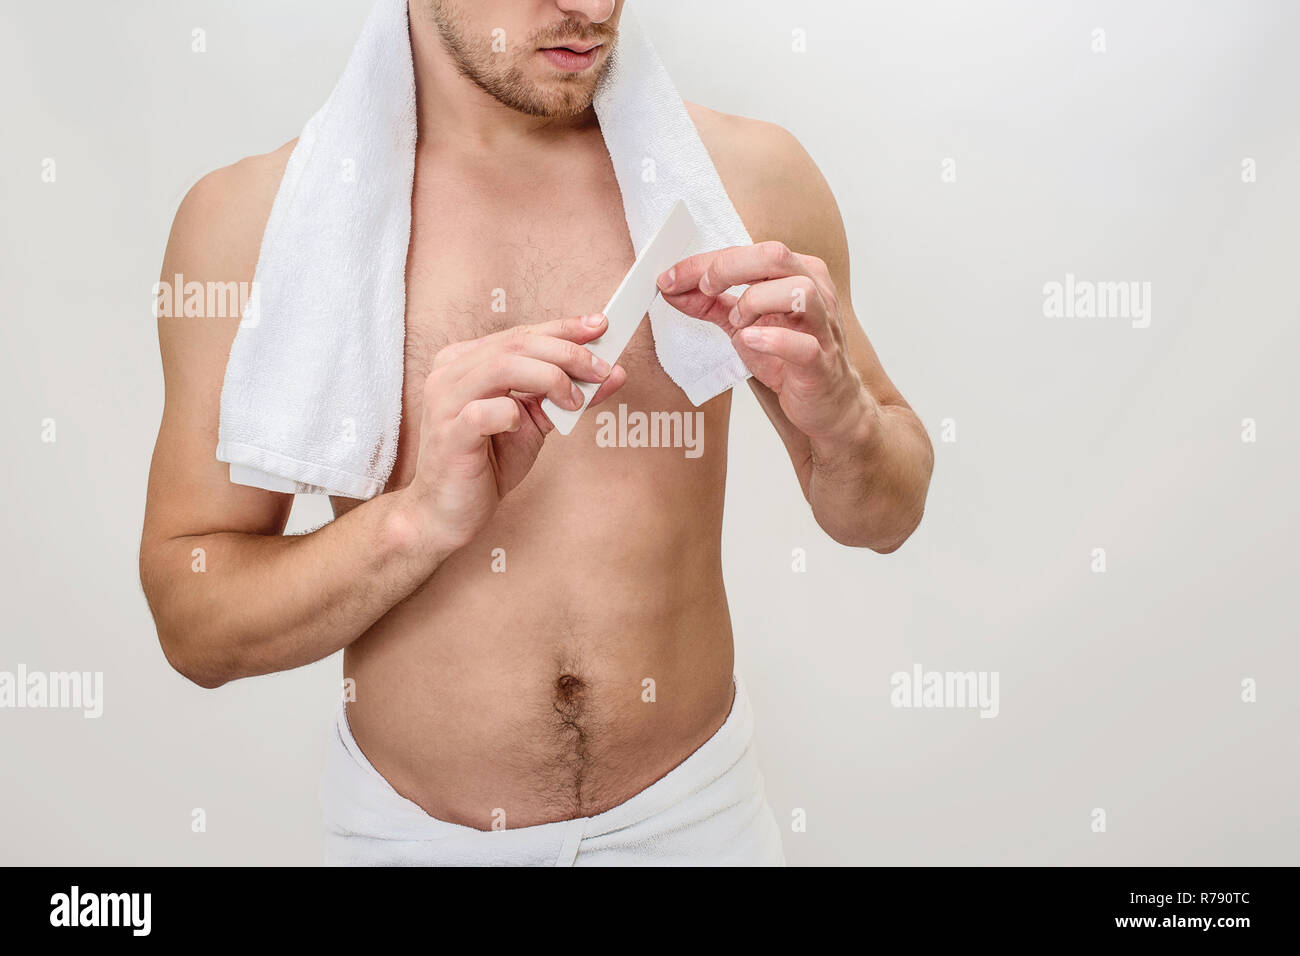 Cut view of well-built young man does nail up correction. He has towel around neck. Guy is shirtless. Isolated on white background. - Stock Image